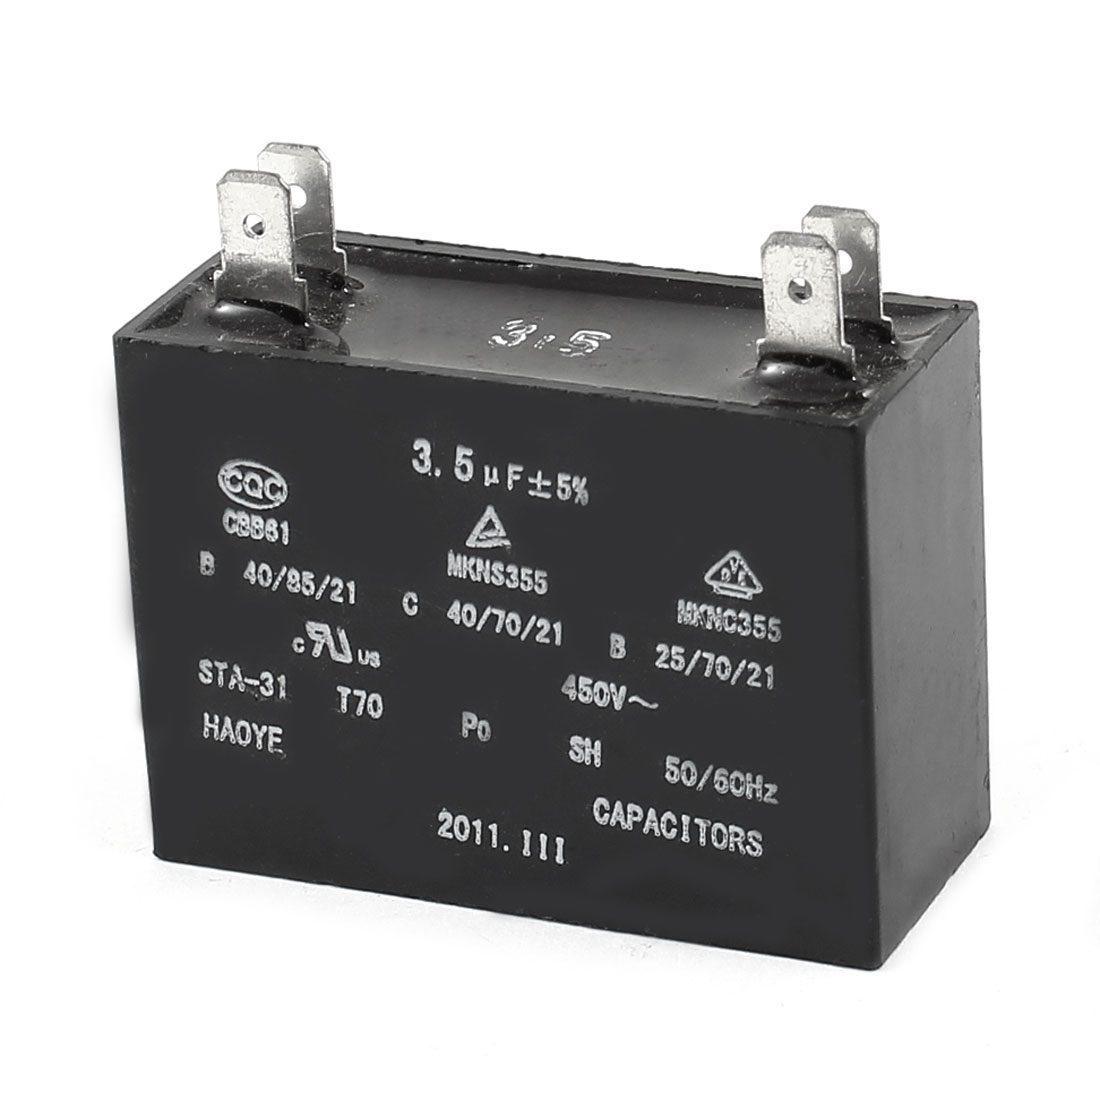 3.5uF 450VAC 50/60Hz 4 Pin Motor Running Capacitor CBB61 for Air Condition